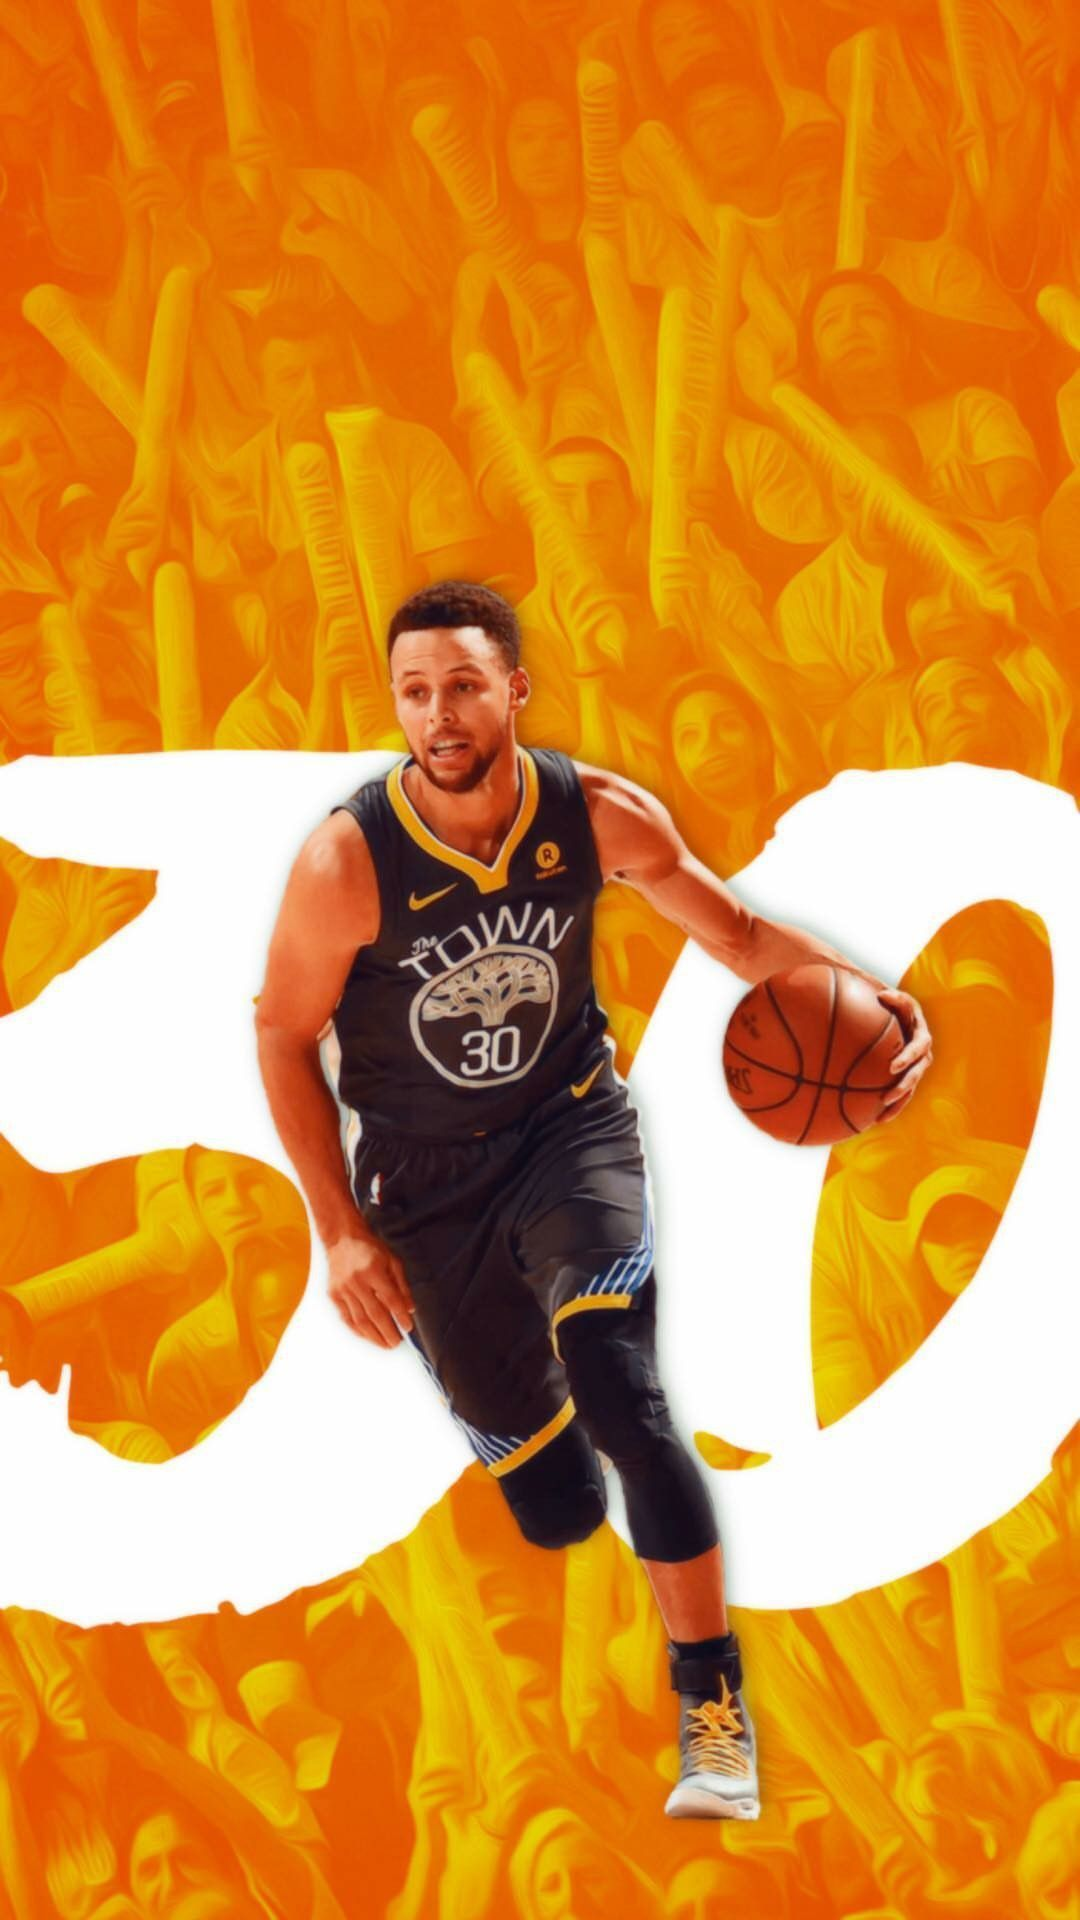 Stephen Curry Background Hupages Download Iphone Wallpapers Stephen Curry Wallpaper Curry Wallpaper Stephen Curry Pictures